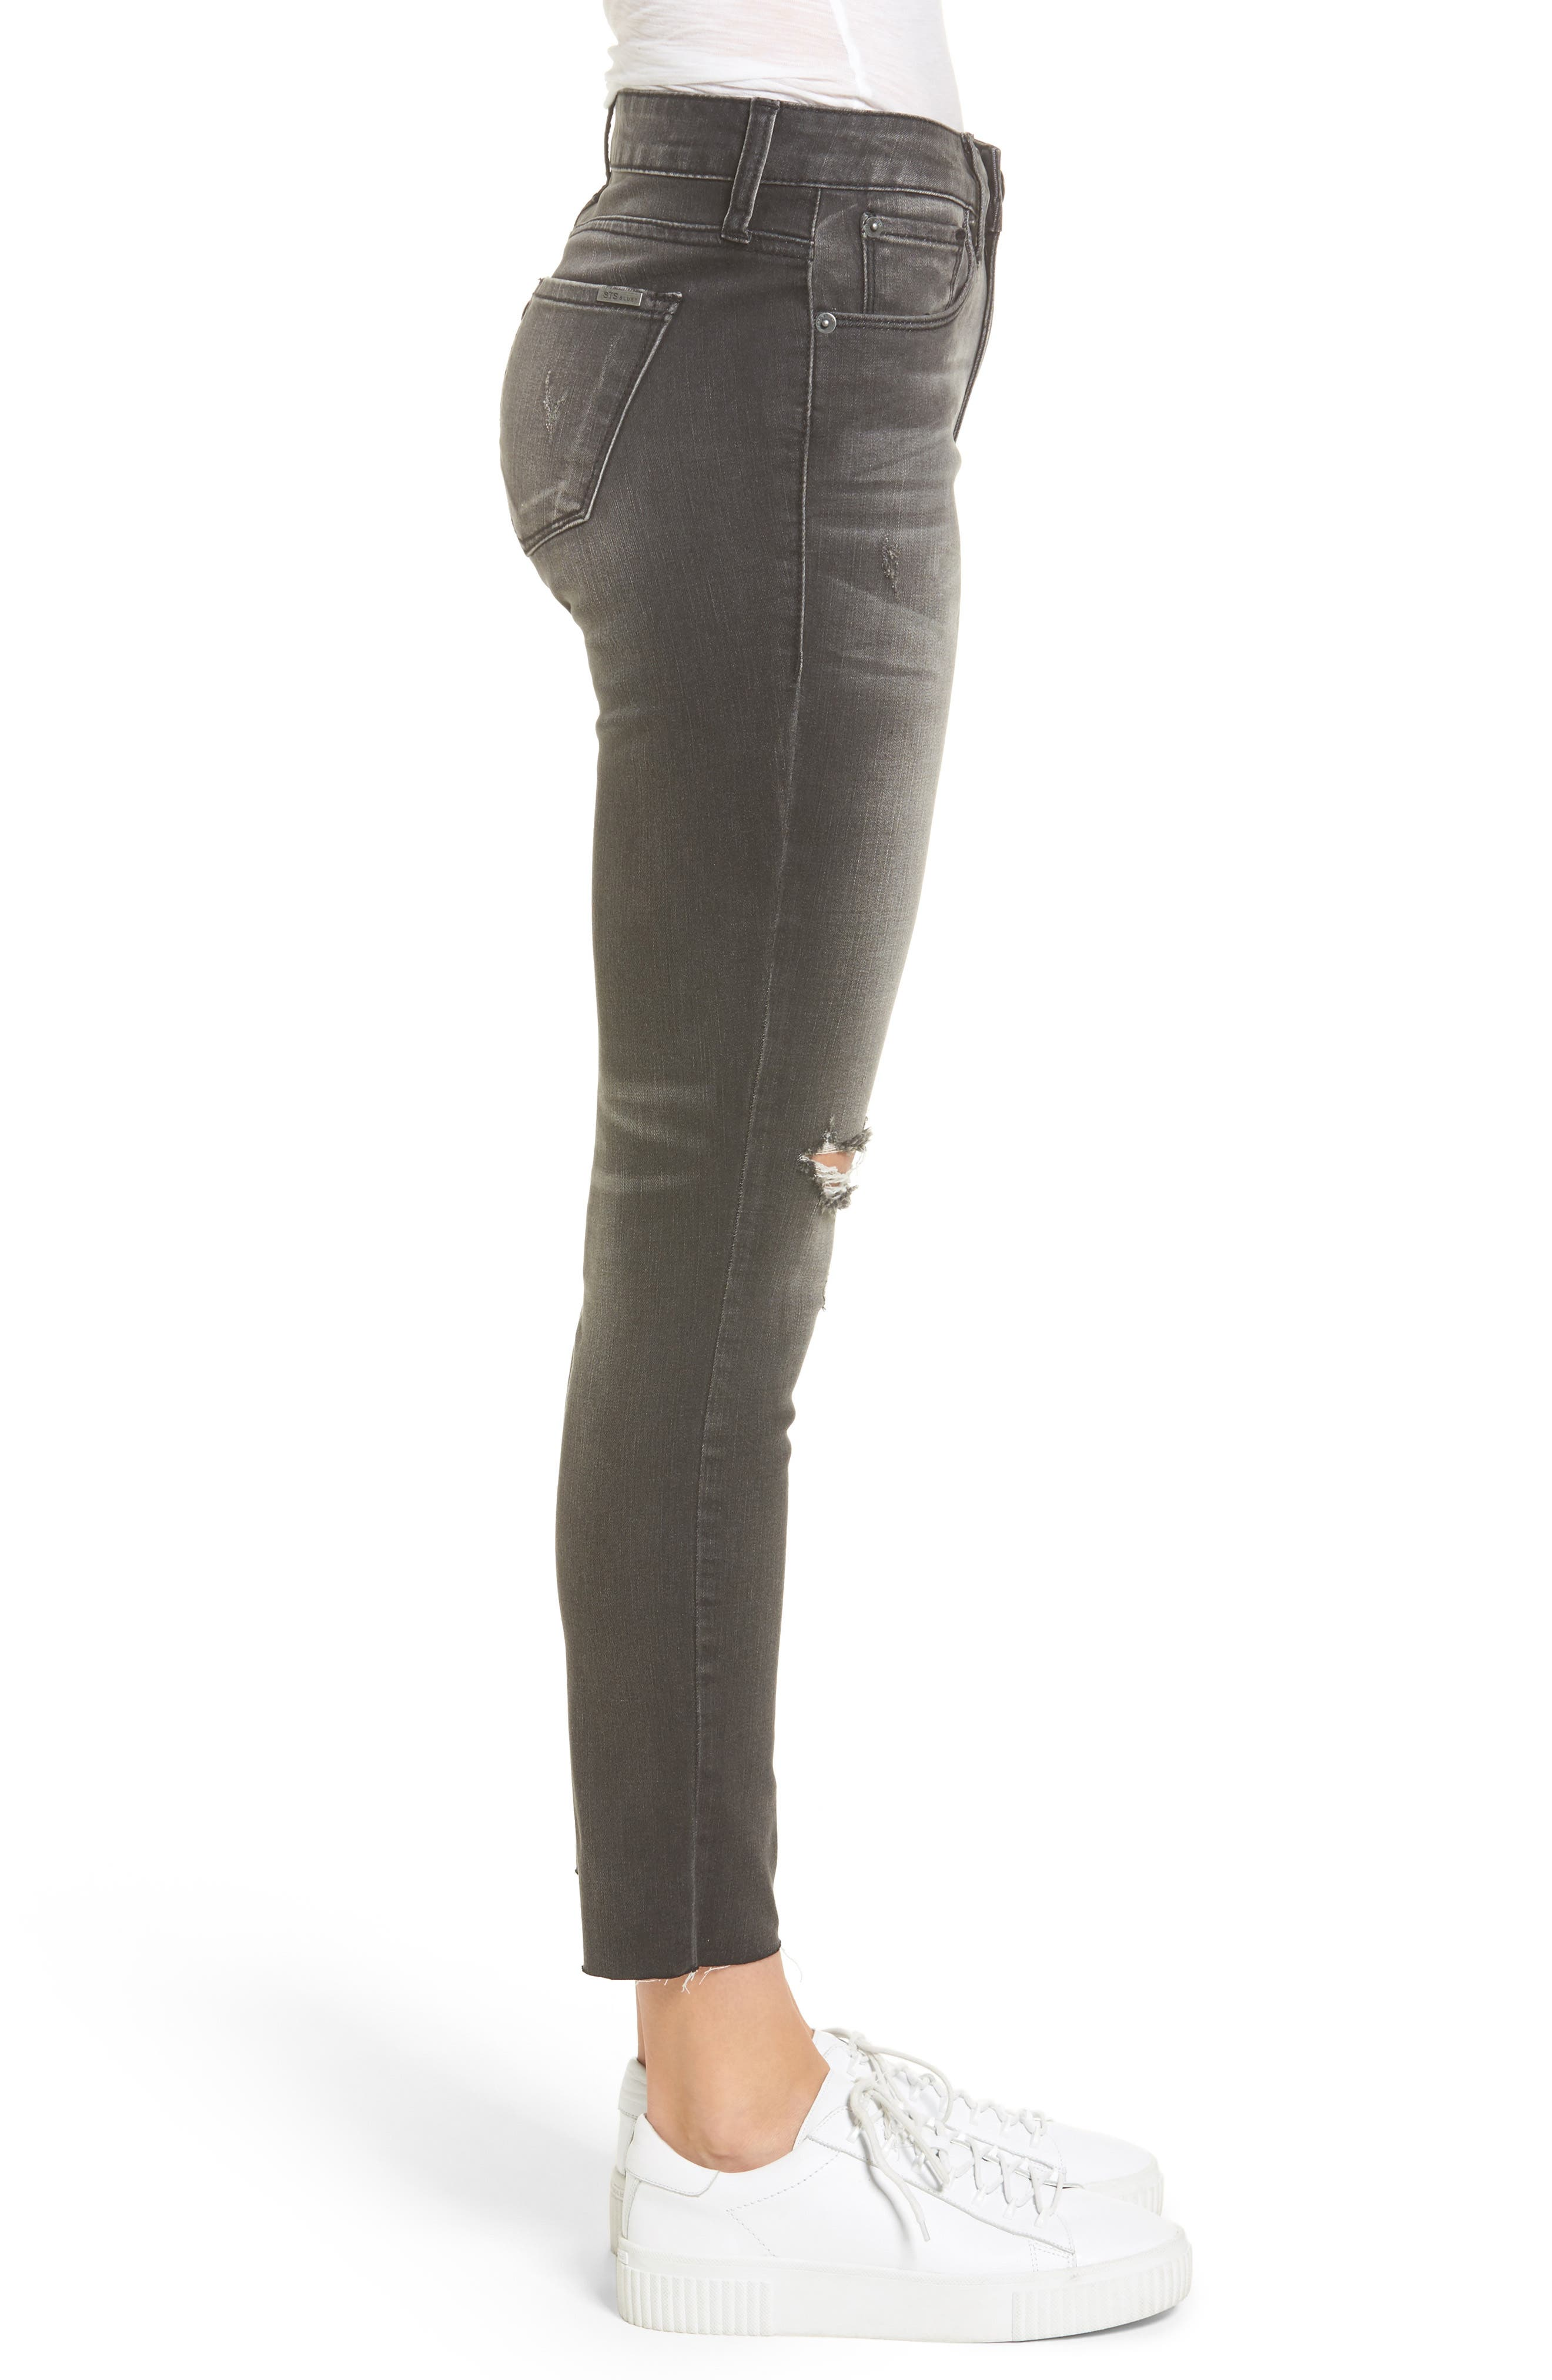 STS Emma Ripped Crop Skinny Jeans,                             Alternate thumbnail 3, color,                             001